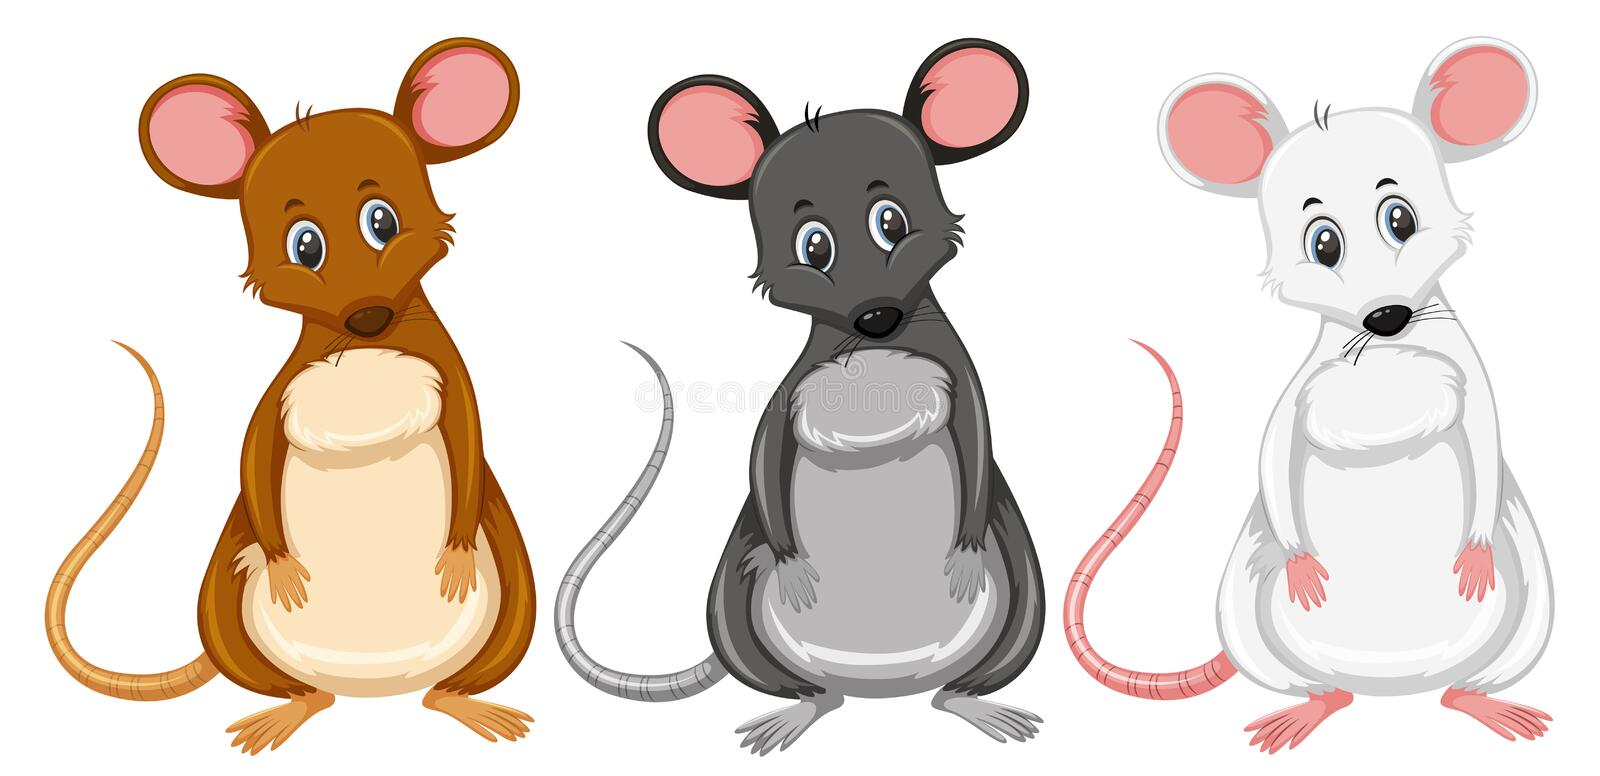 A set of differnt color rat stock illustration